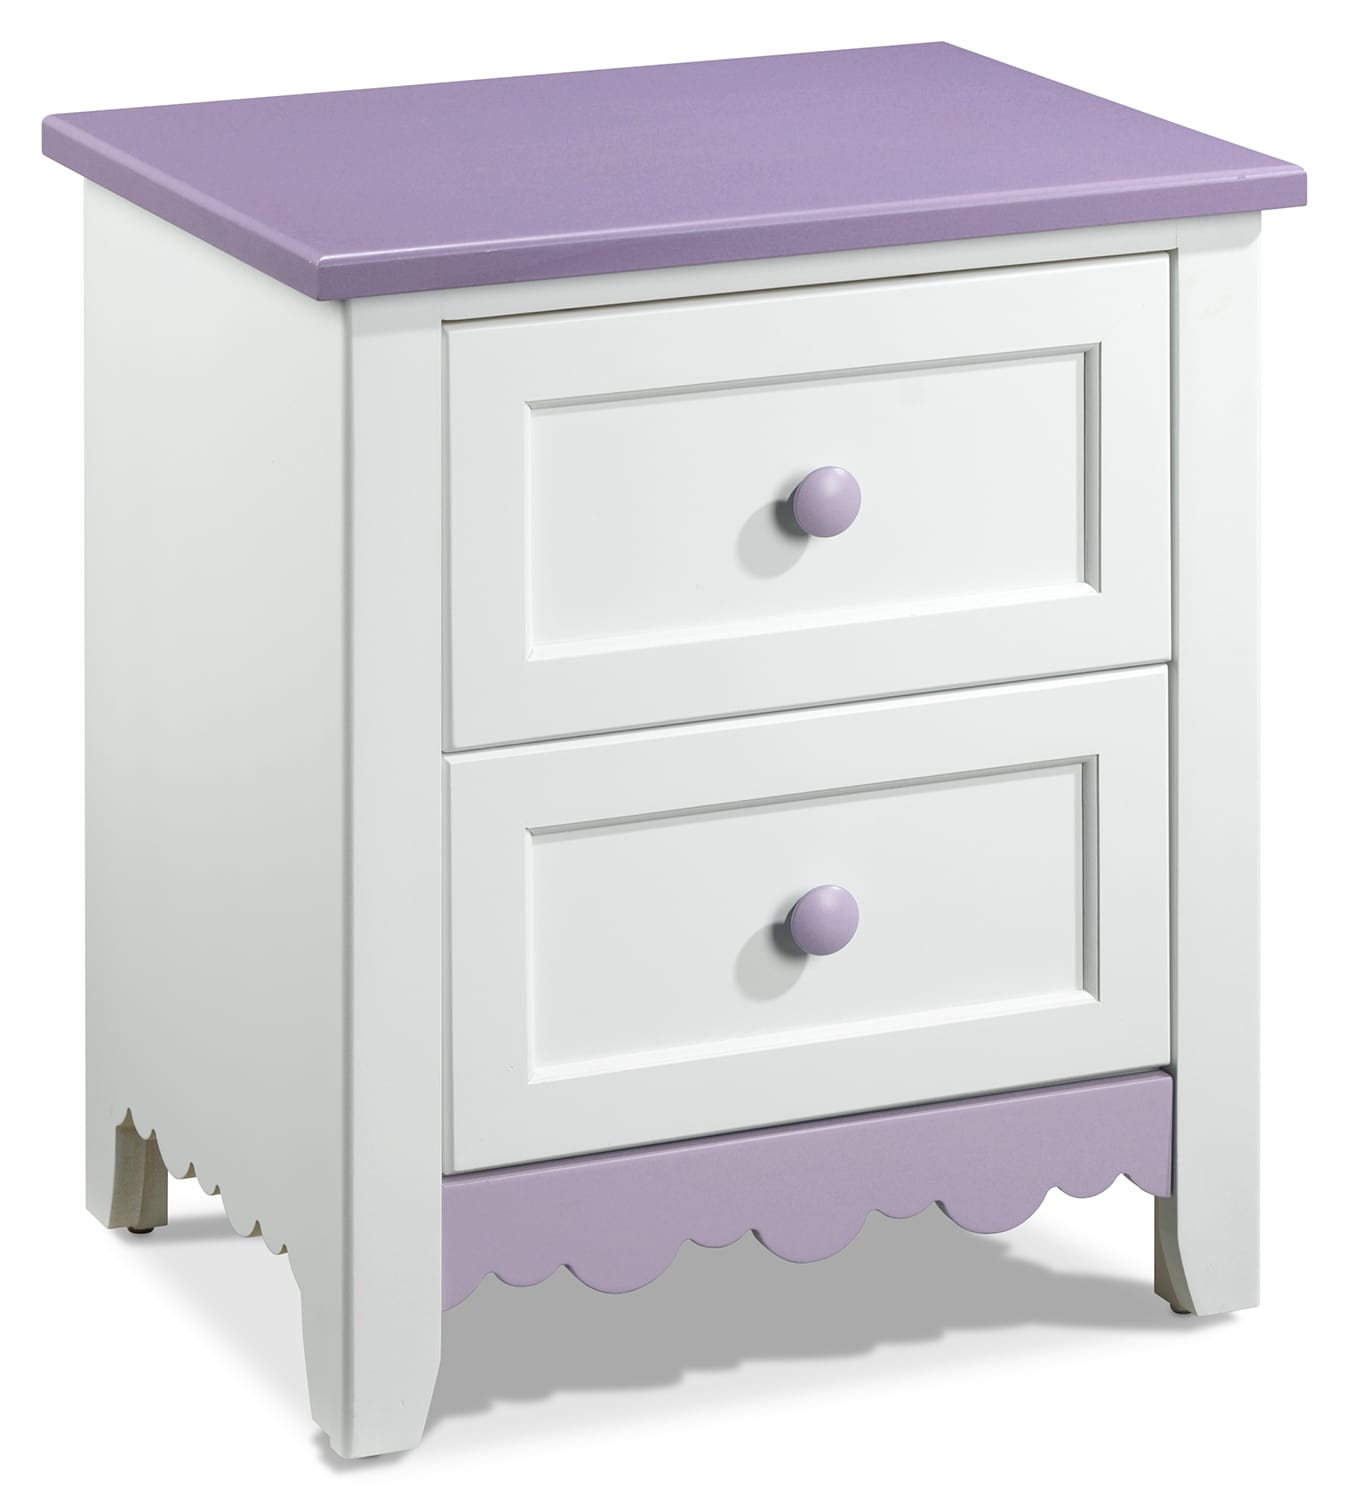 Sweetdreams Night Table - White and Lavender